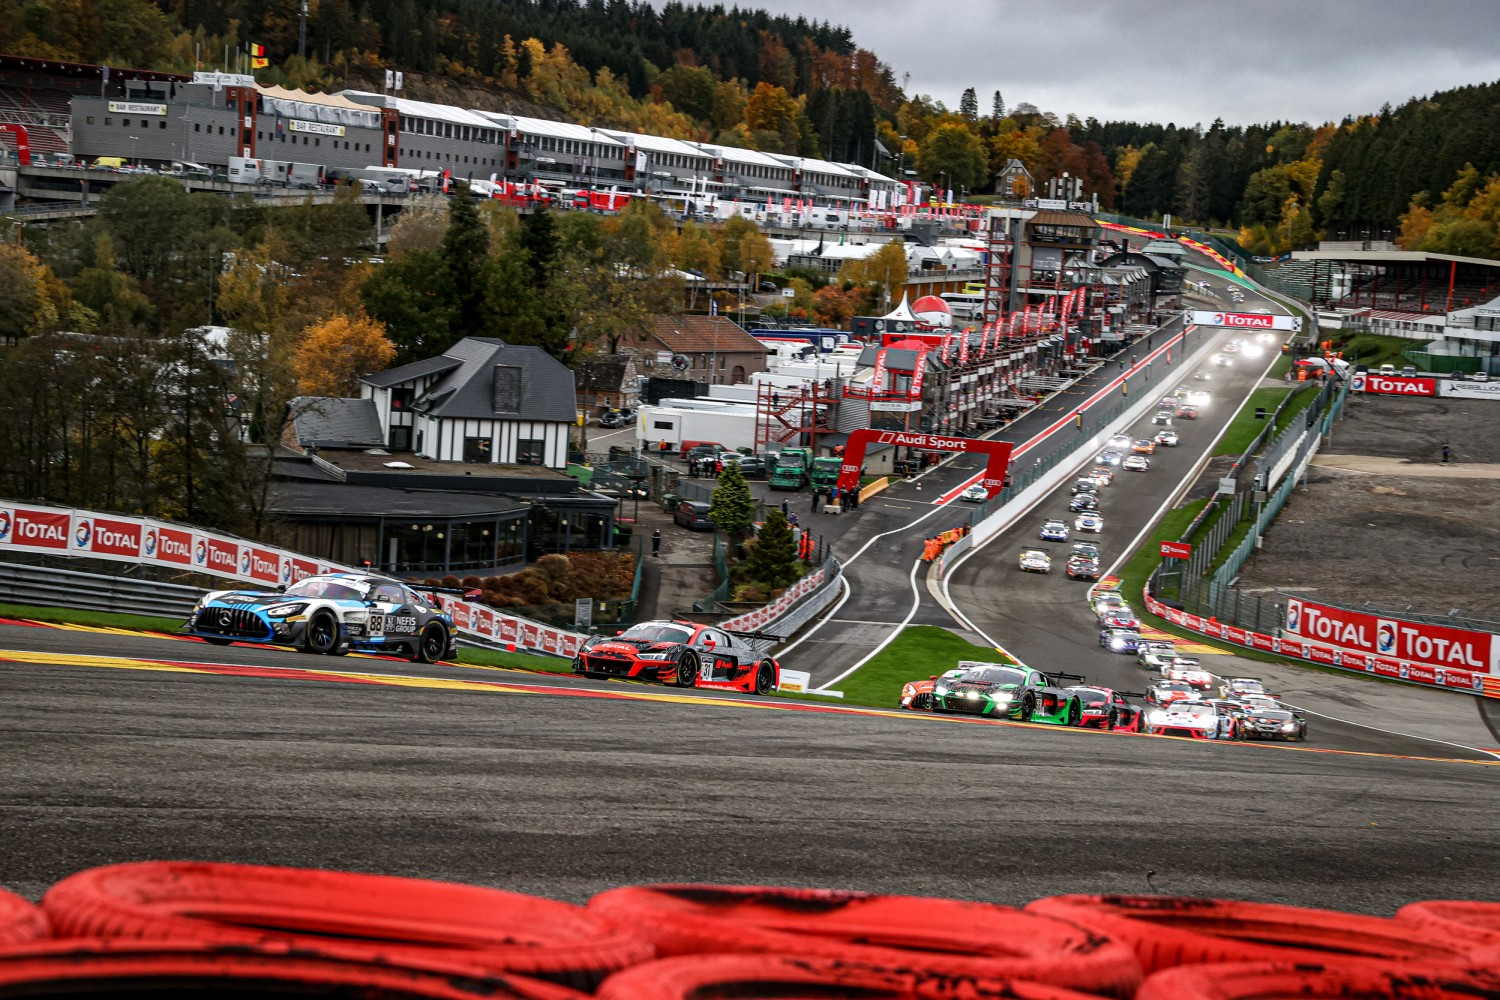 1-Hour Update: Marciello leads Total 24 Hours of Spa for Mercedes-AMG Team AKKA ASP